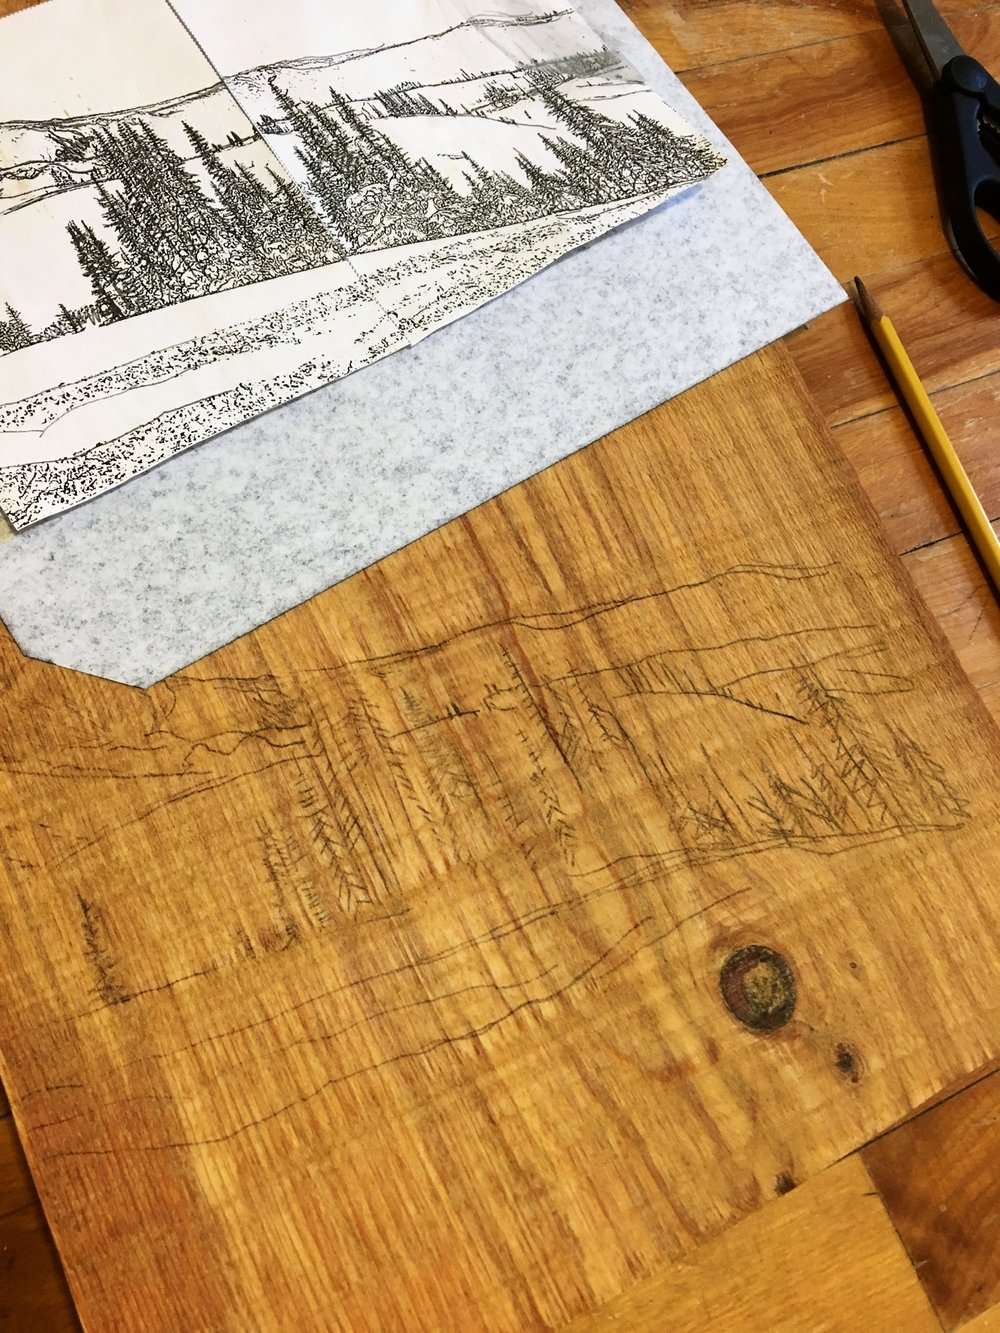 Step 3: Trace Over Your Design With The Wood Burning Pen. You Can  Experiment With Different Tips For Different Intensities And Textures.